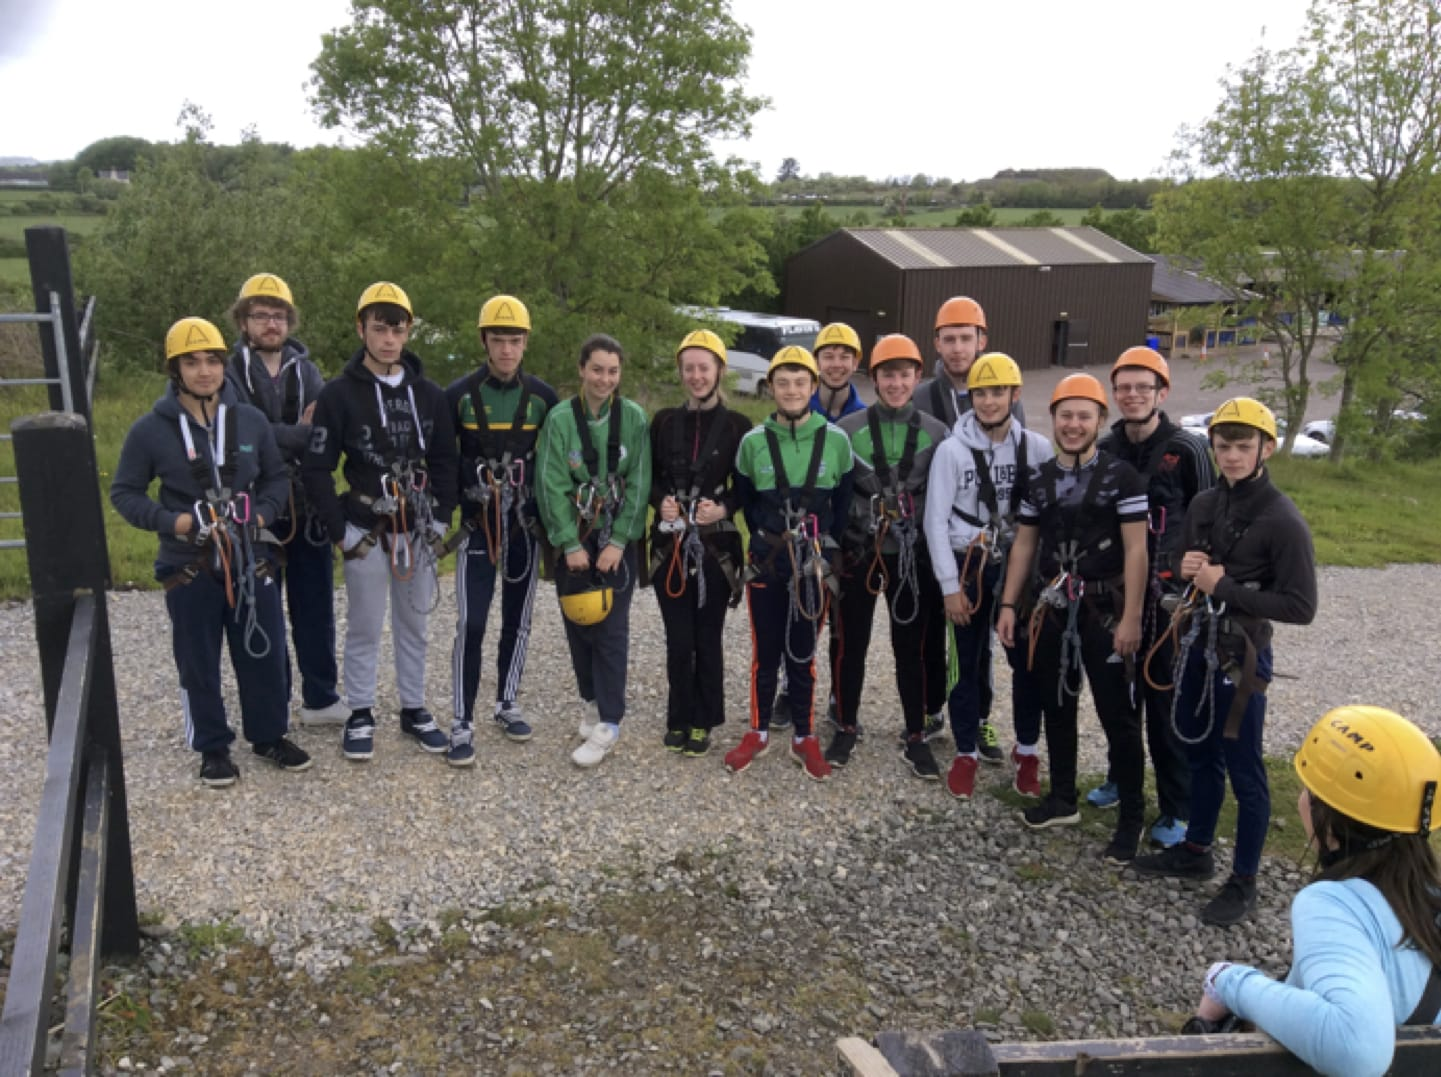 May 2017: Desmond College Post Primary School Newcastle West, Leaving Certificate students about to go zip lining in Ballyhass Lakes